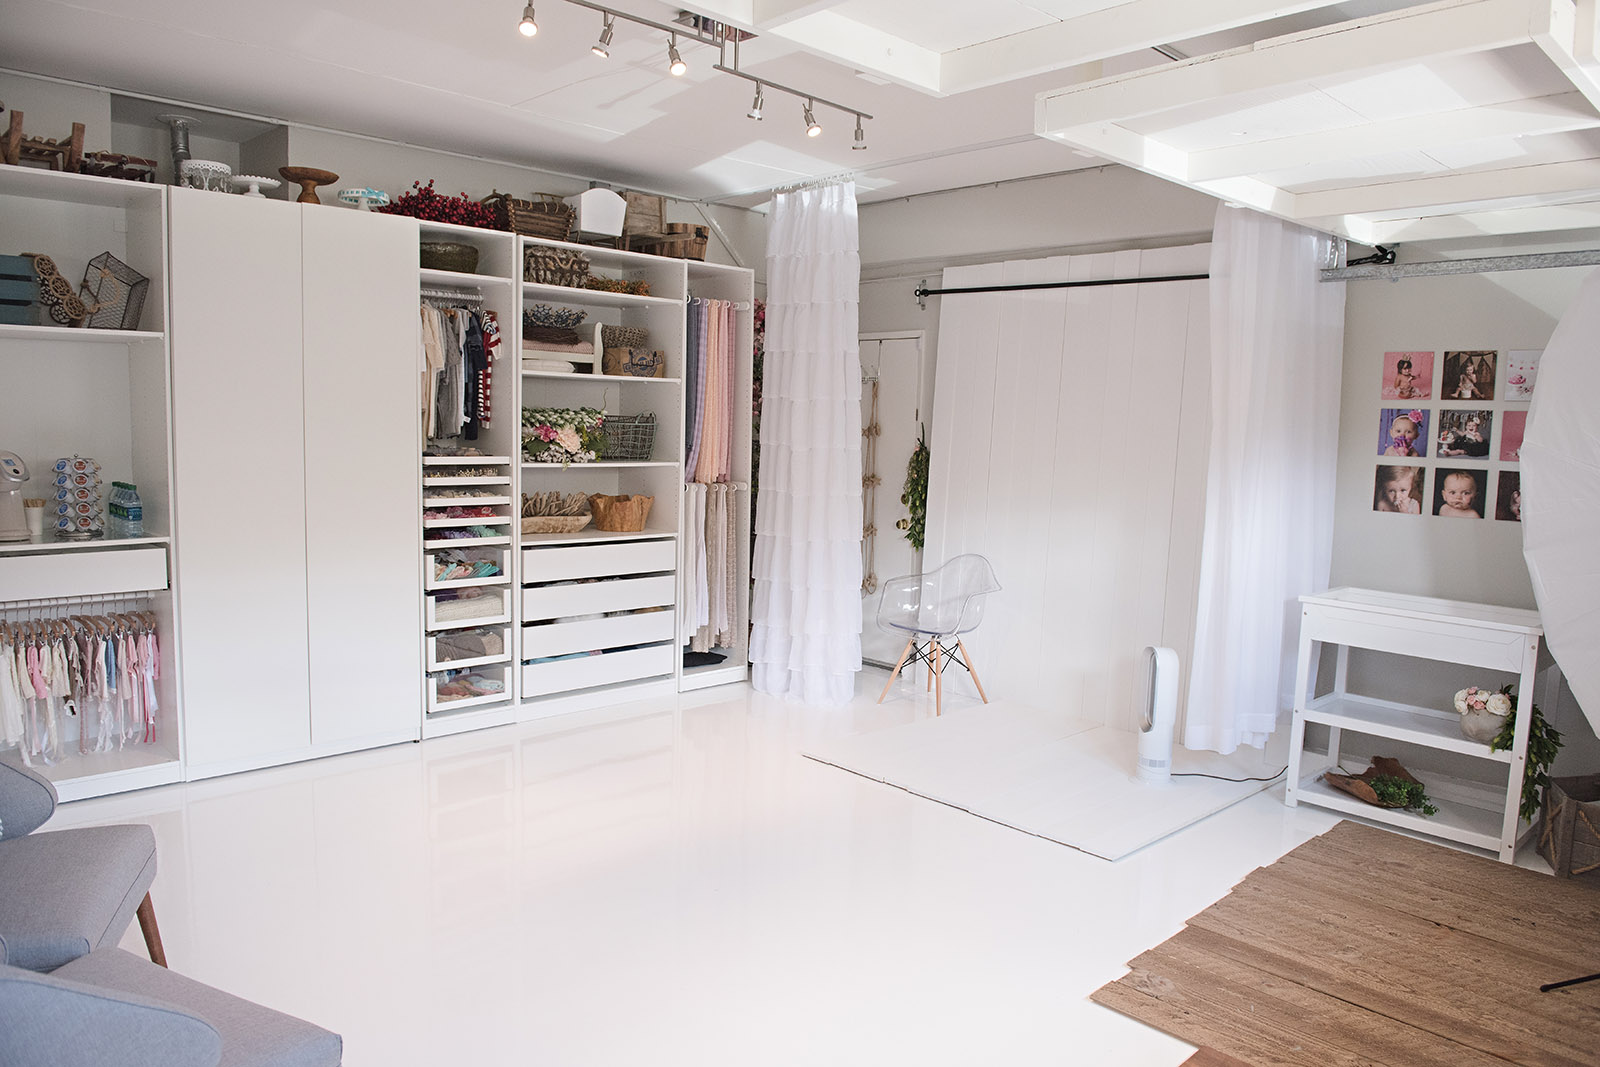 Inspiring Space A Garage Turned Photo Studio From Ashley